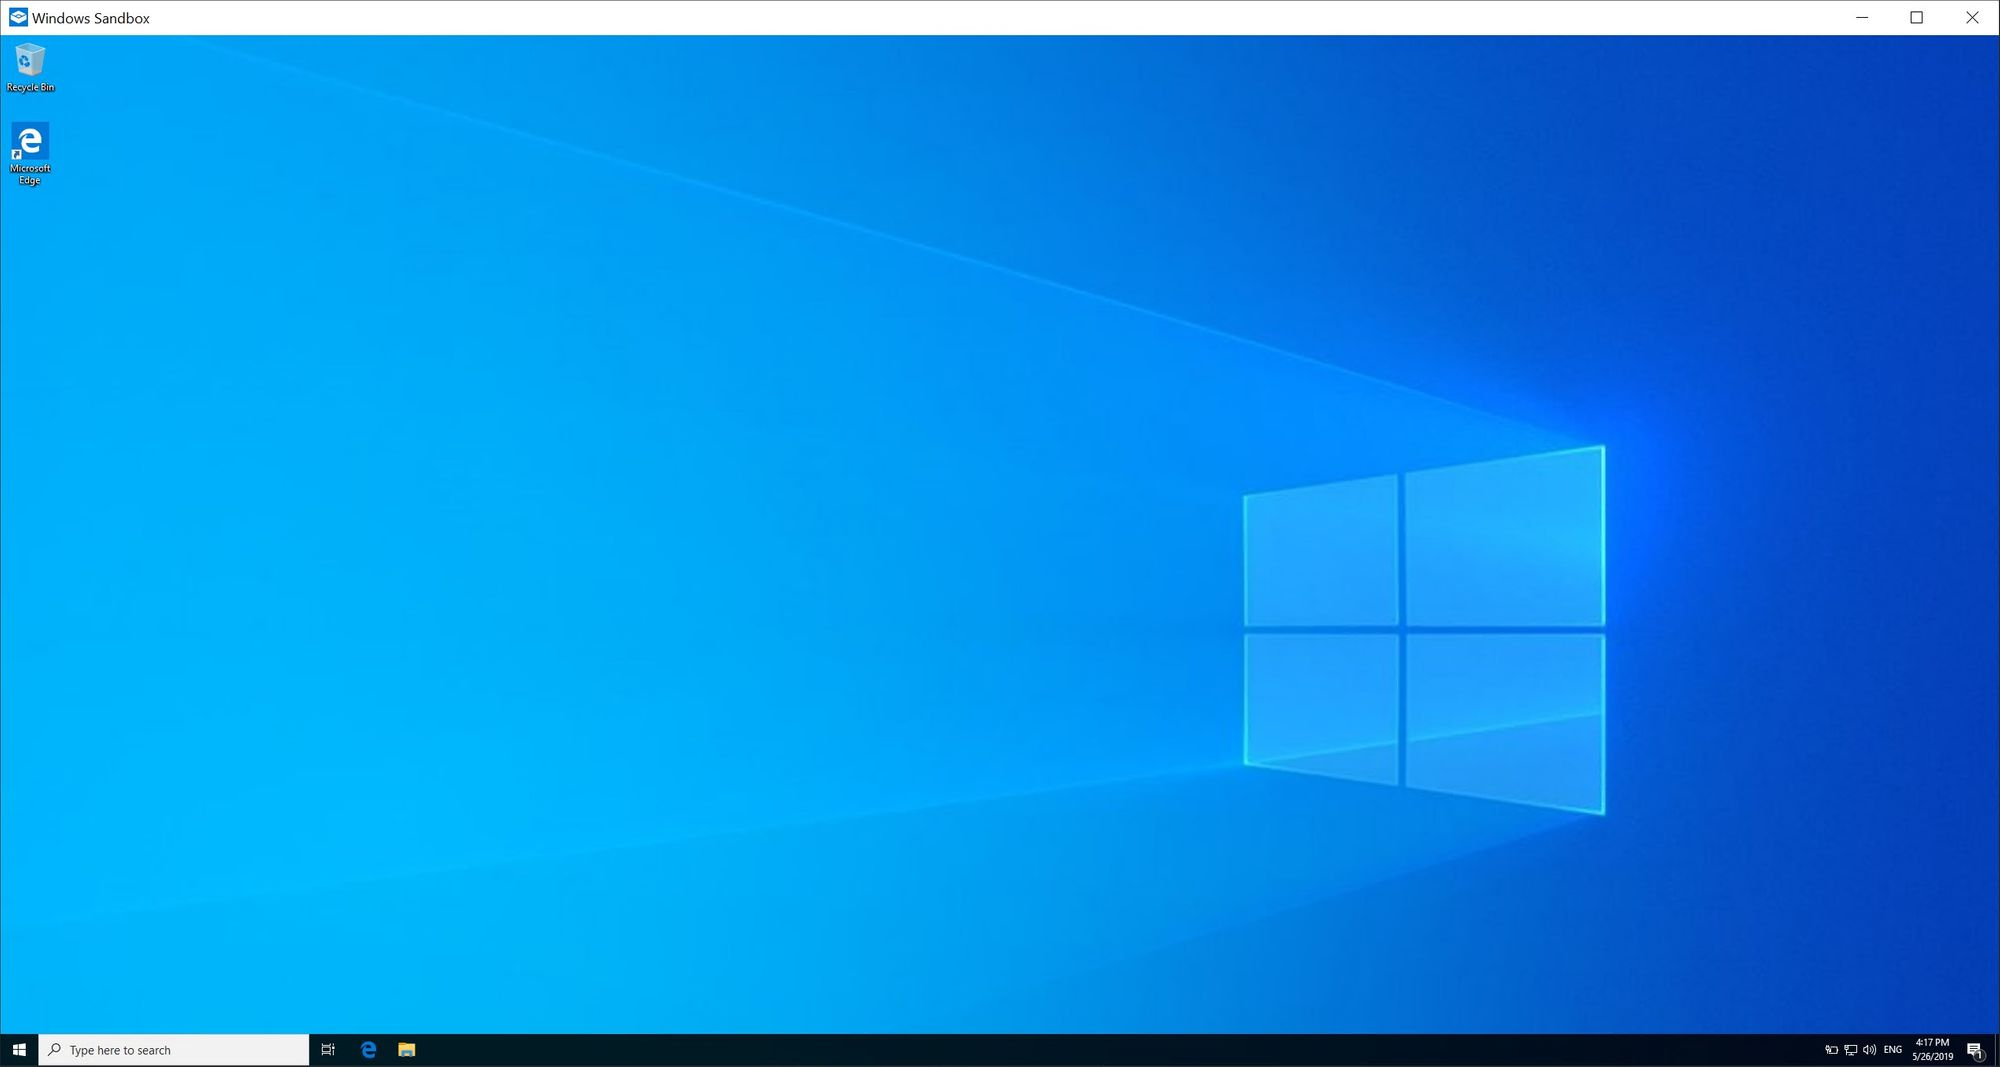 Windows 10 Sandbox